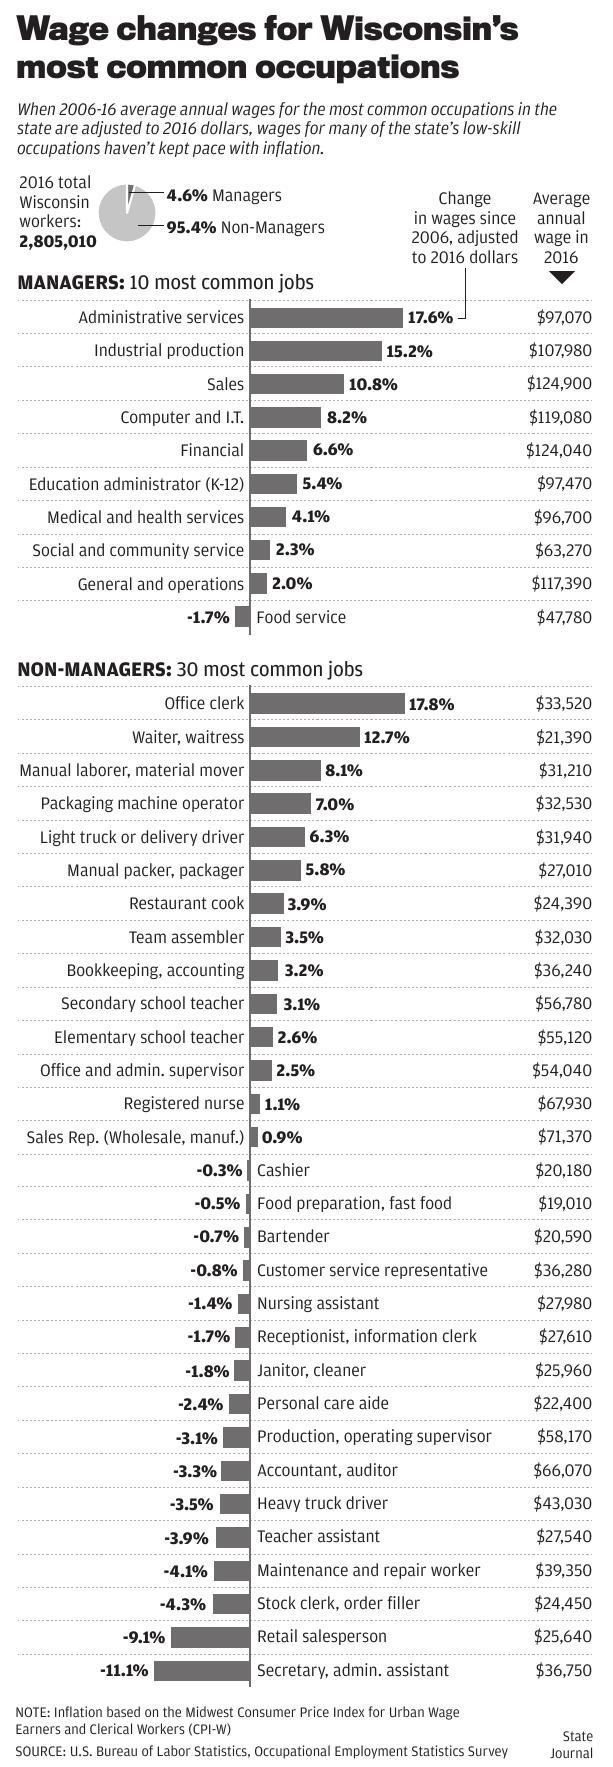 Wisconsin wage changes, by occupation